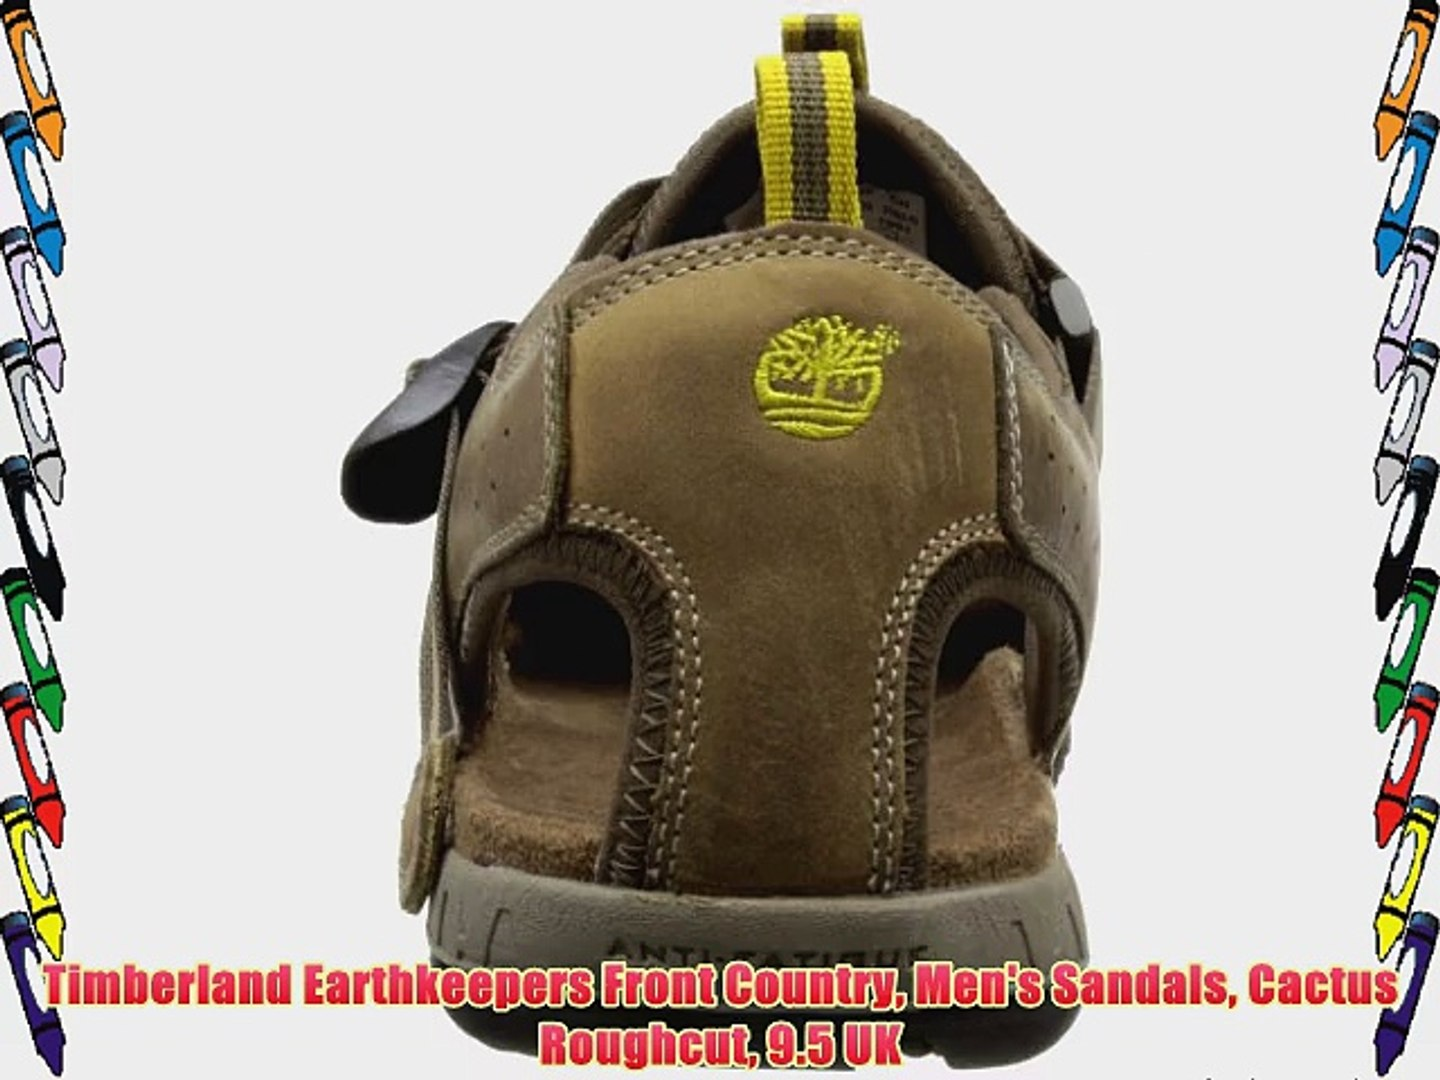 limpiar Labor hidrógeno  Timberland Earthkeepers Front Country Men's Sandals Cactus Roughcut 9.5 UK  - video dailymotion